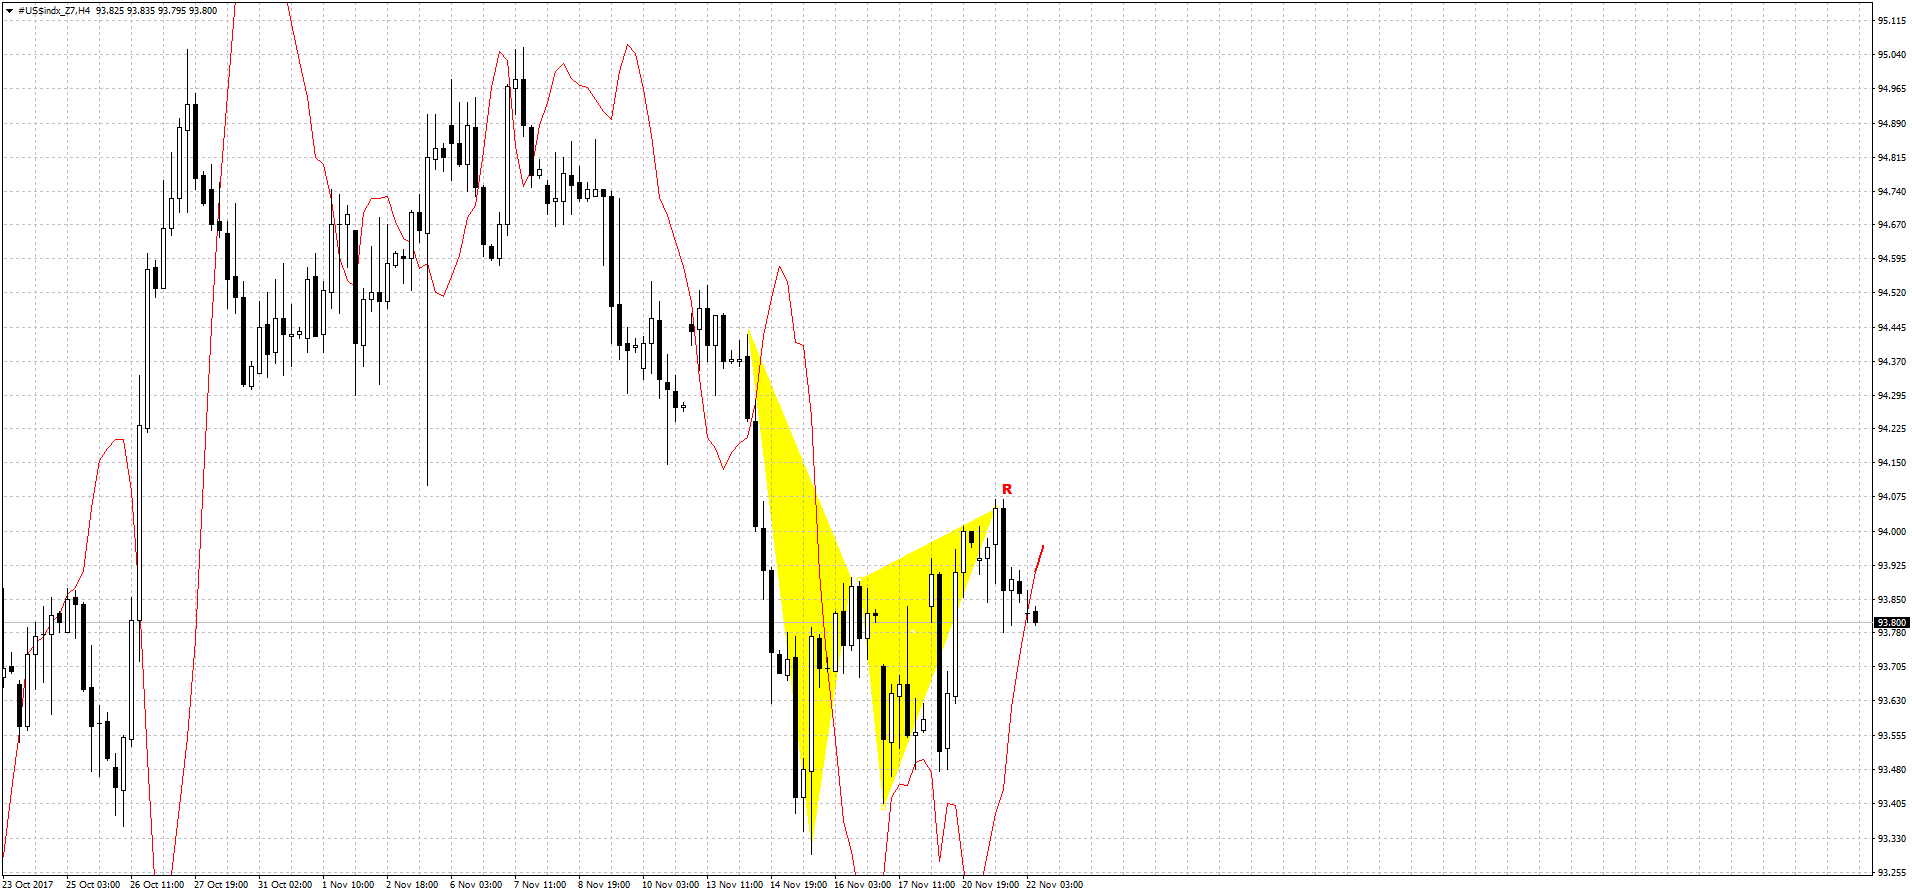 dxy_4h_22_11_17.